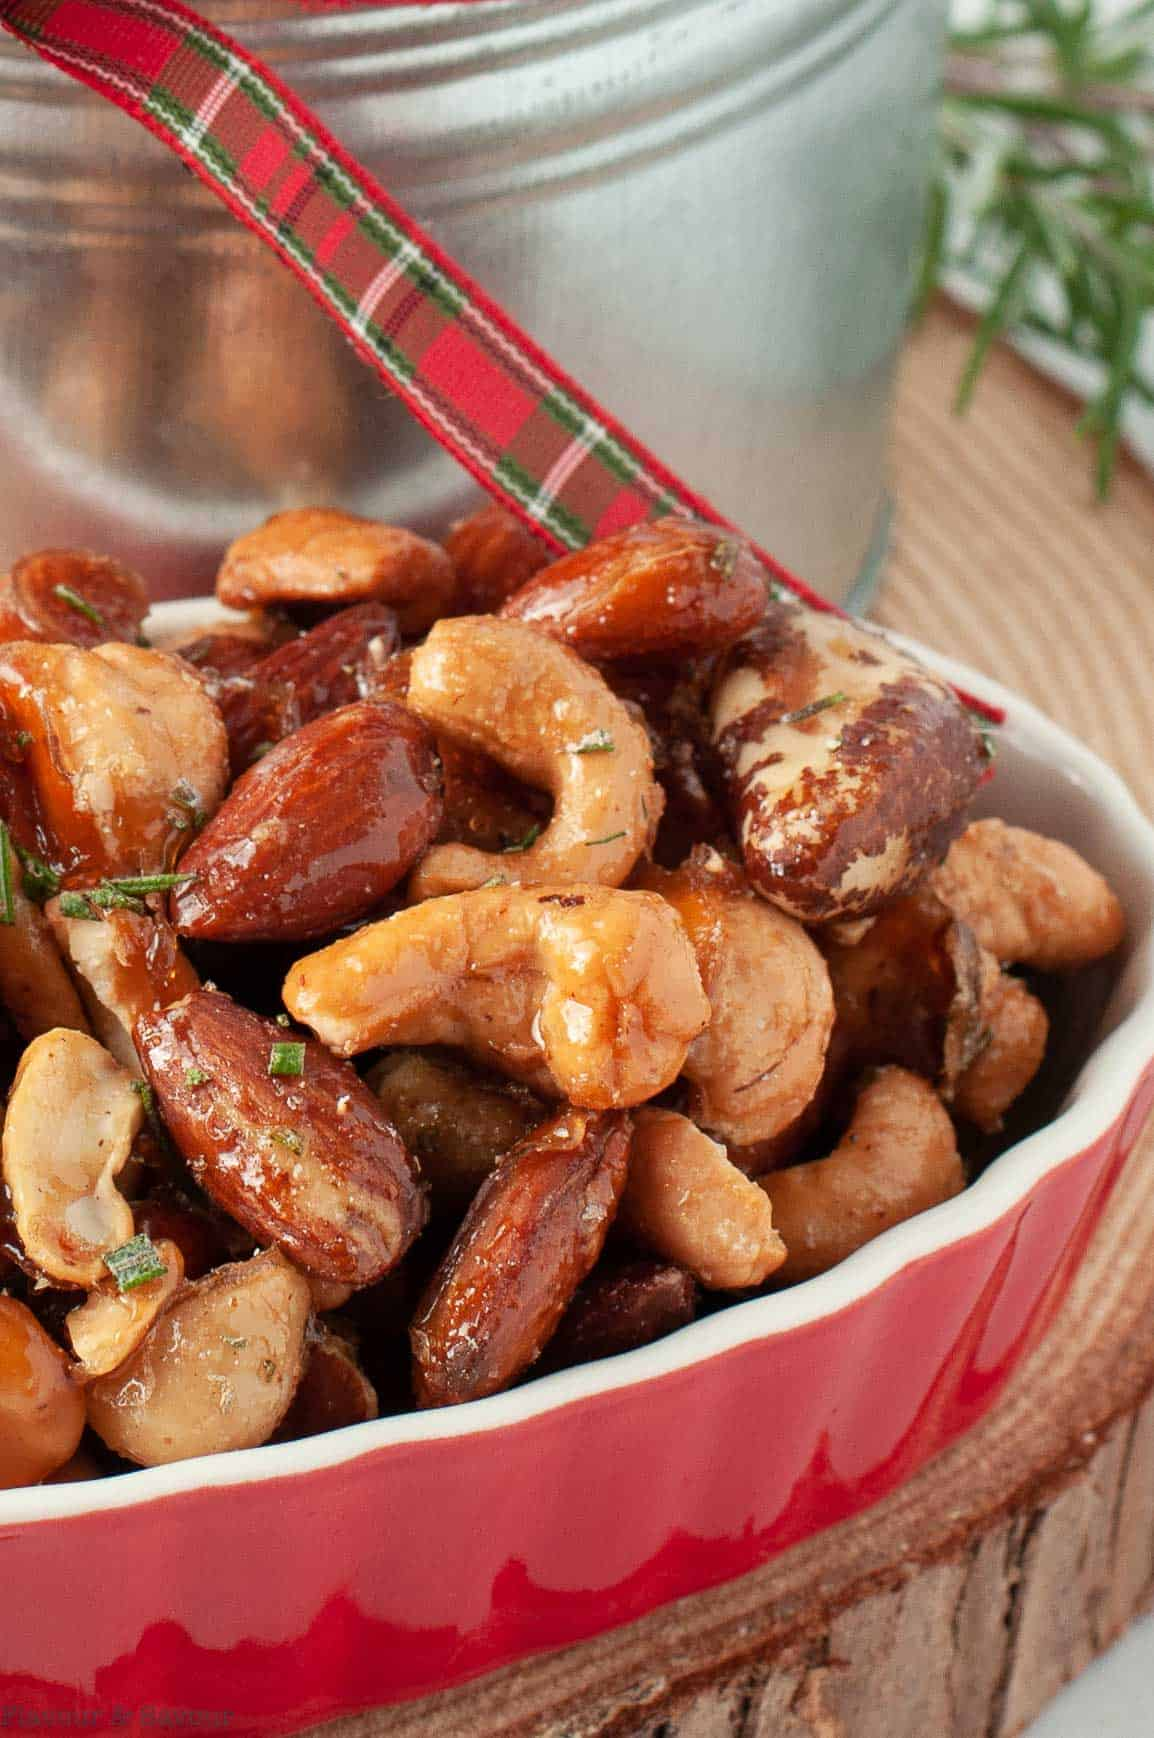 Close up view of rosemary nut mix in a small red dish